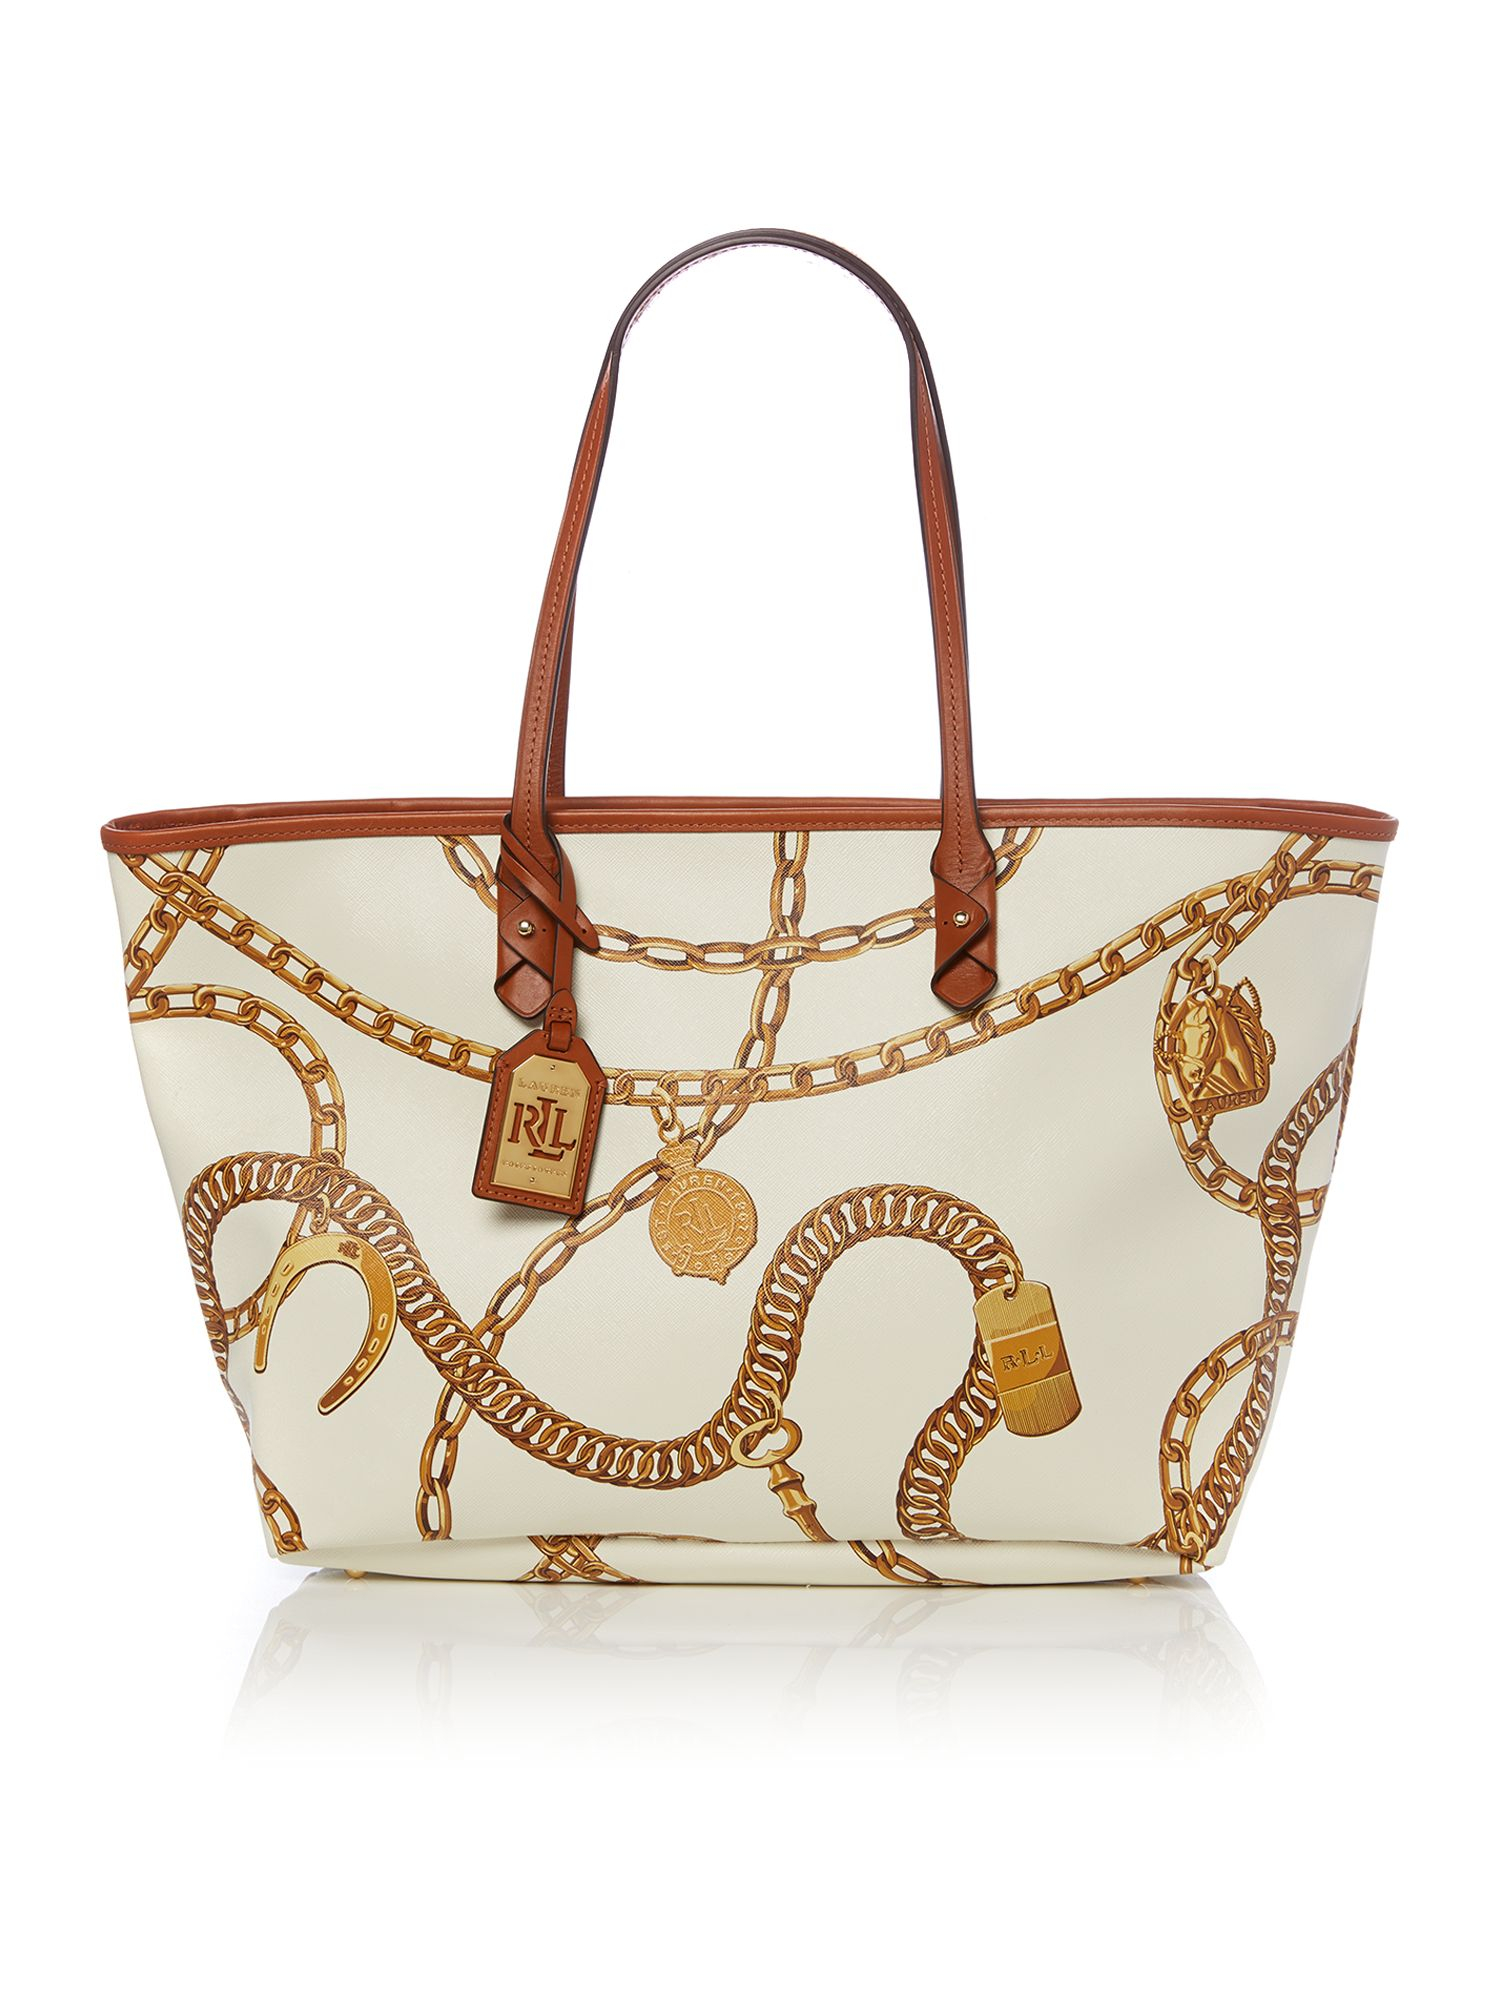 7cccbe9df4 ... best lauren by ralph lauren halstead white large tote bag in brown lyst  b0d03 8709c